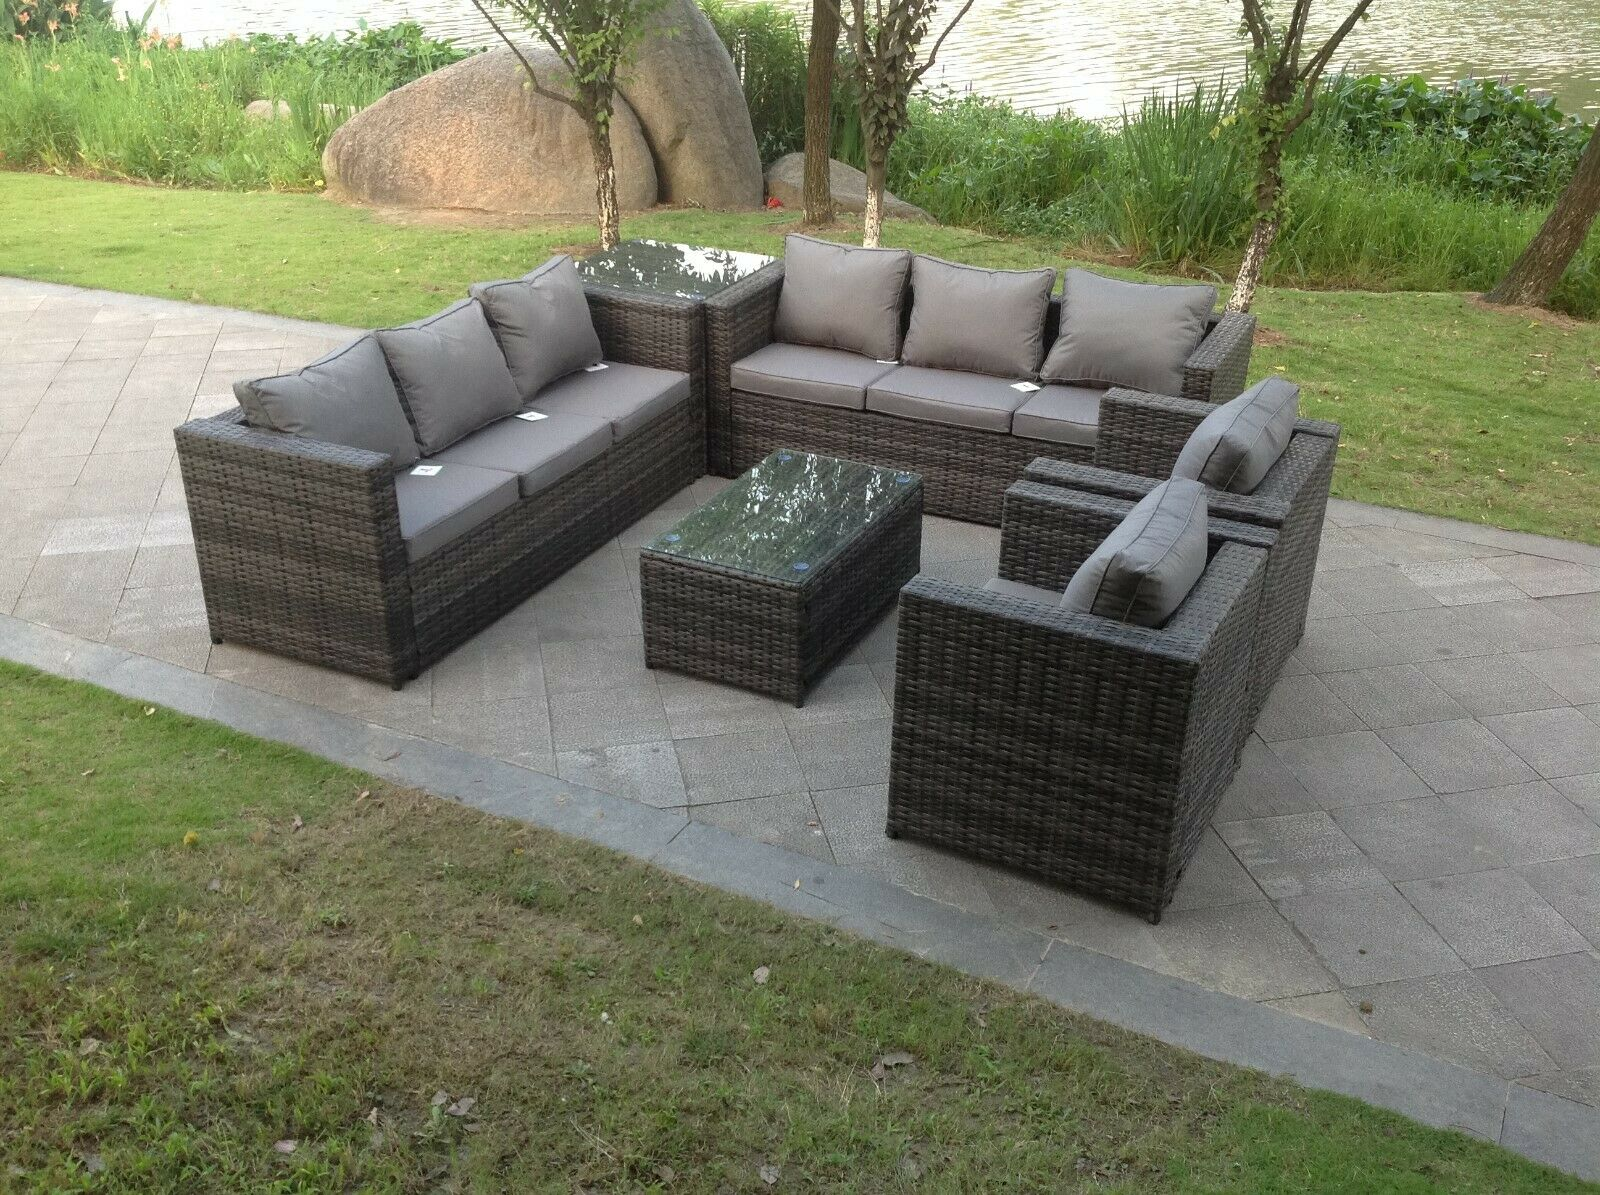 Garden Furniture - rattan sofa set with 2 table chairs footstools outdoor garden furniture